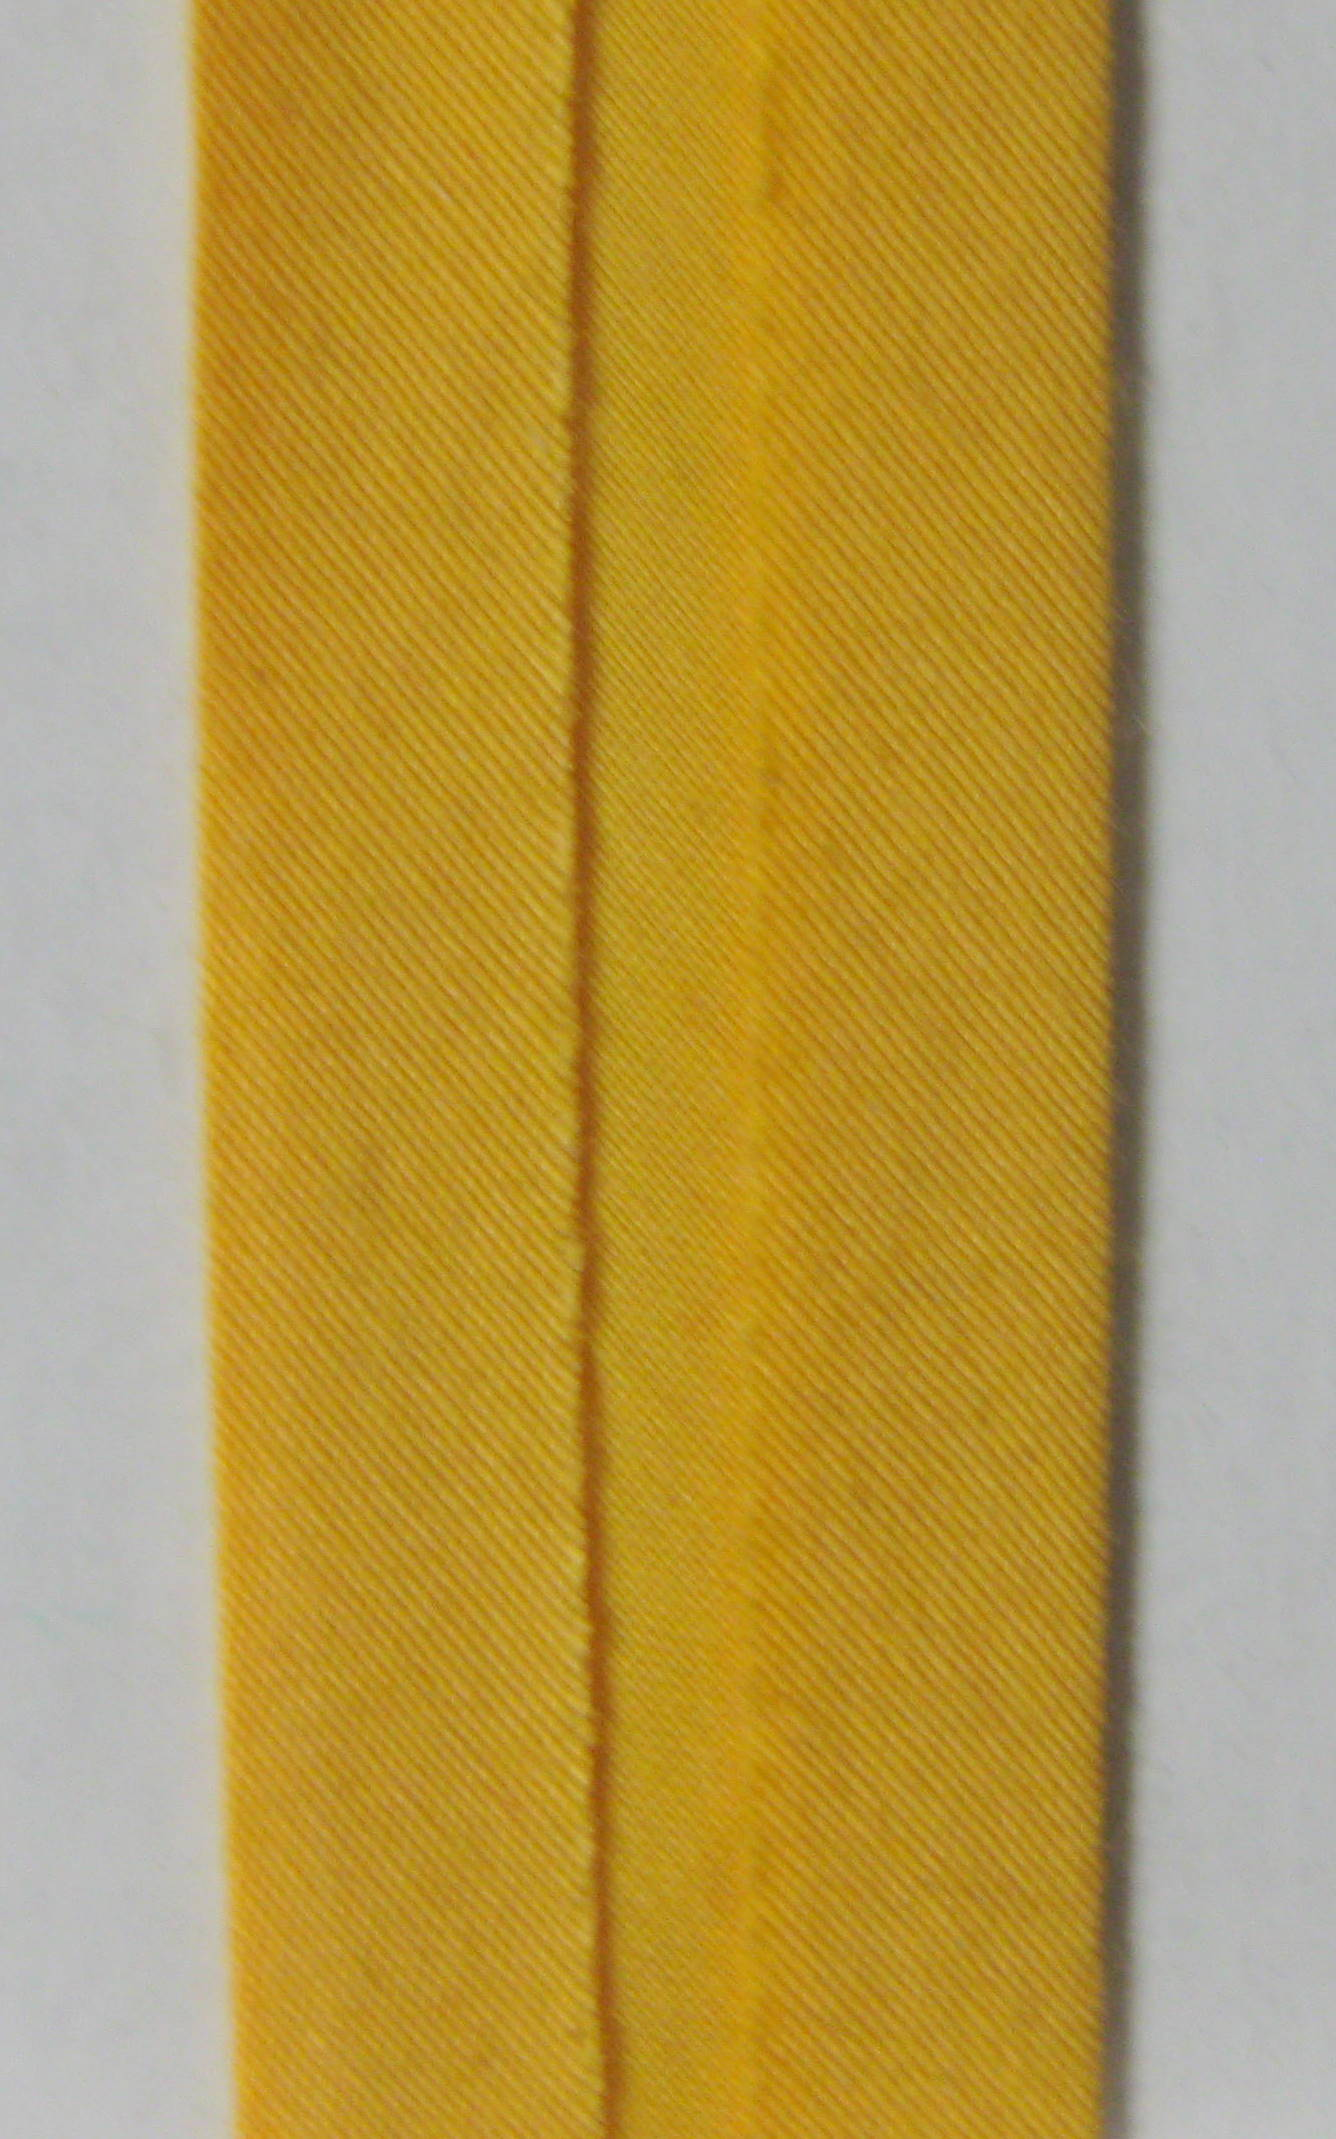 BIAS TAPE BANANA YELLOW